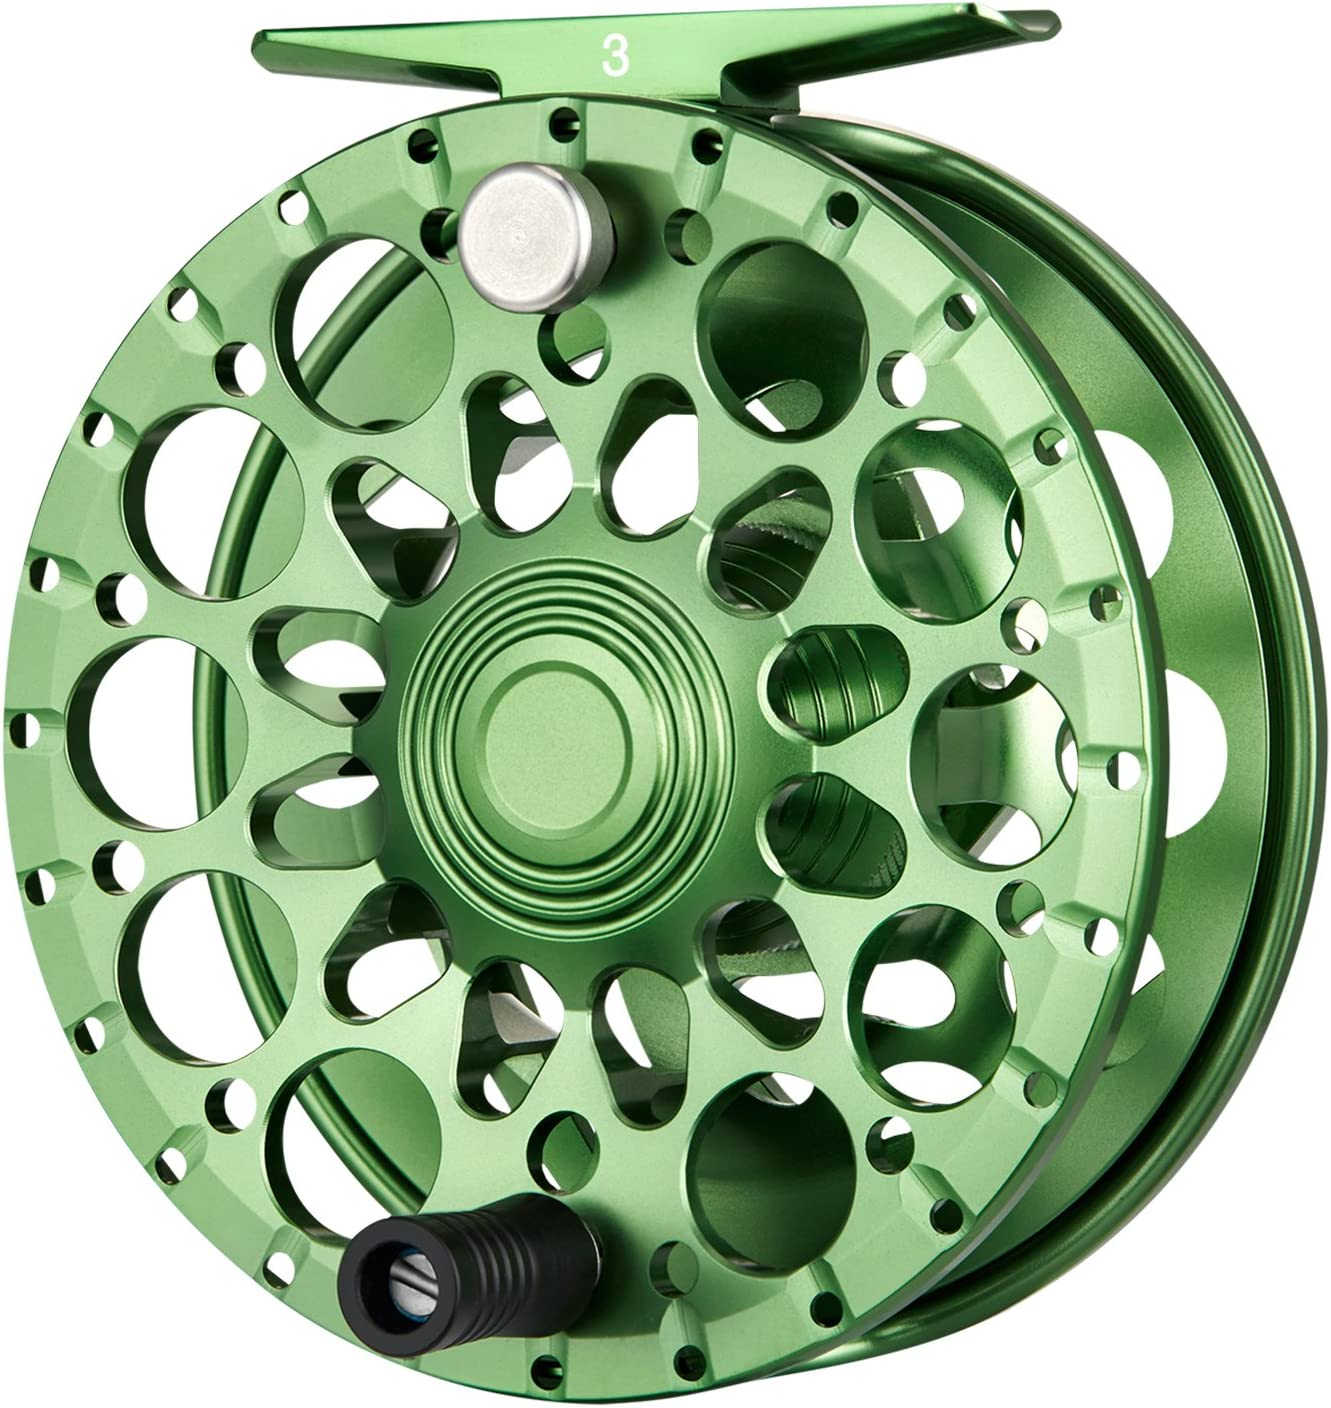 Piscifun Crest Fully Sealed Drag Large Arbor Fly Fishing Reel Saltwater CNC-machined Aluminum Alloy Fly Reel 5 6, 7 8, 9 10 Green,Black